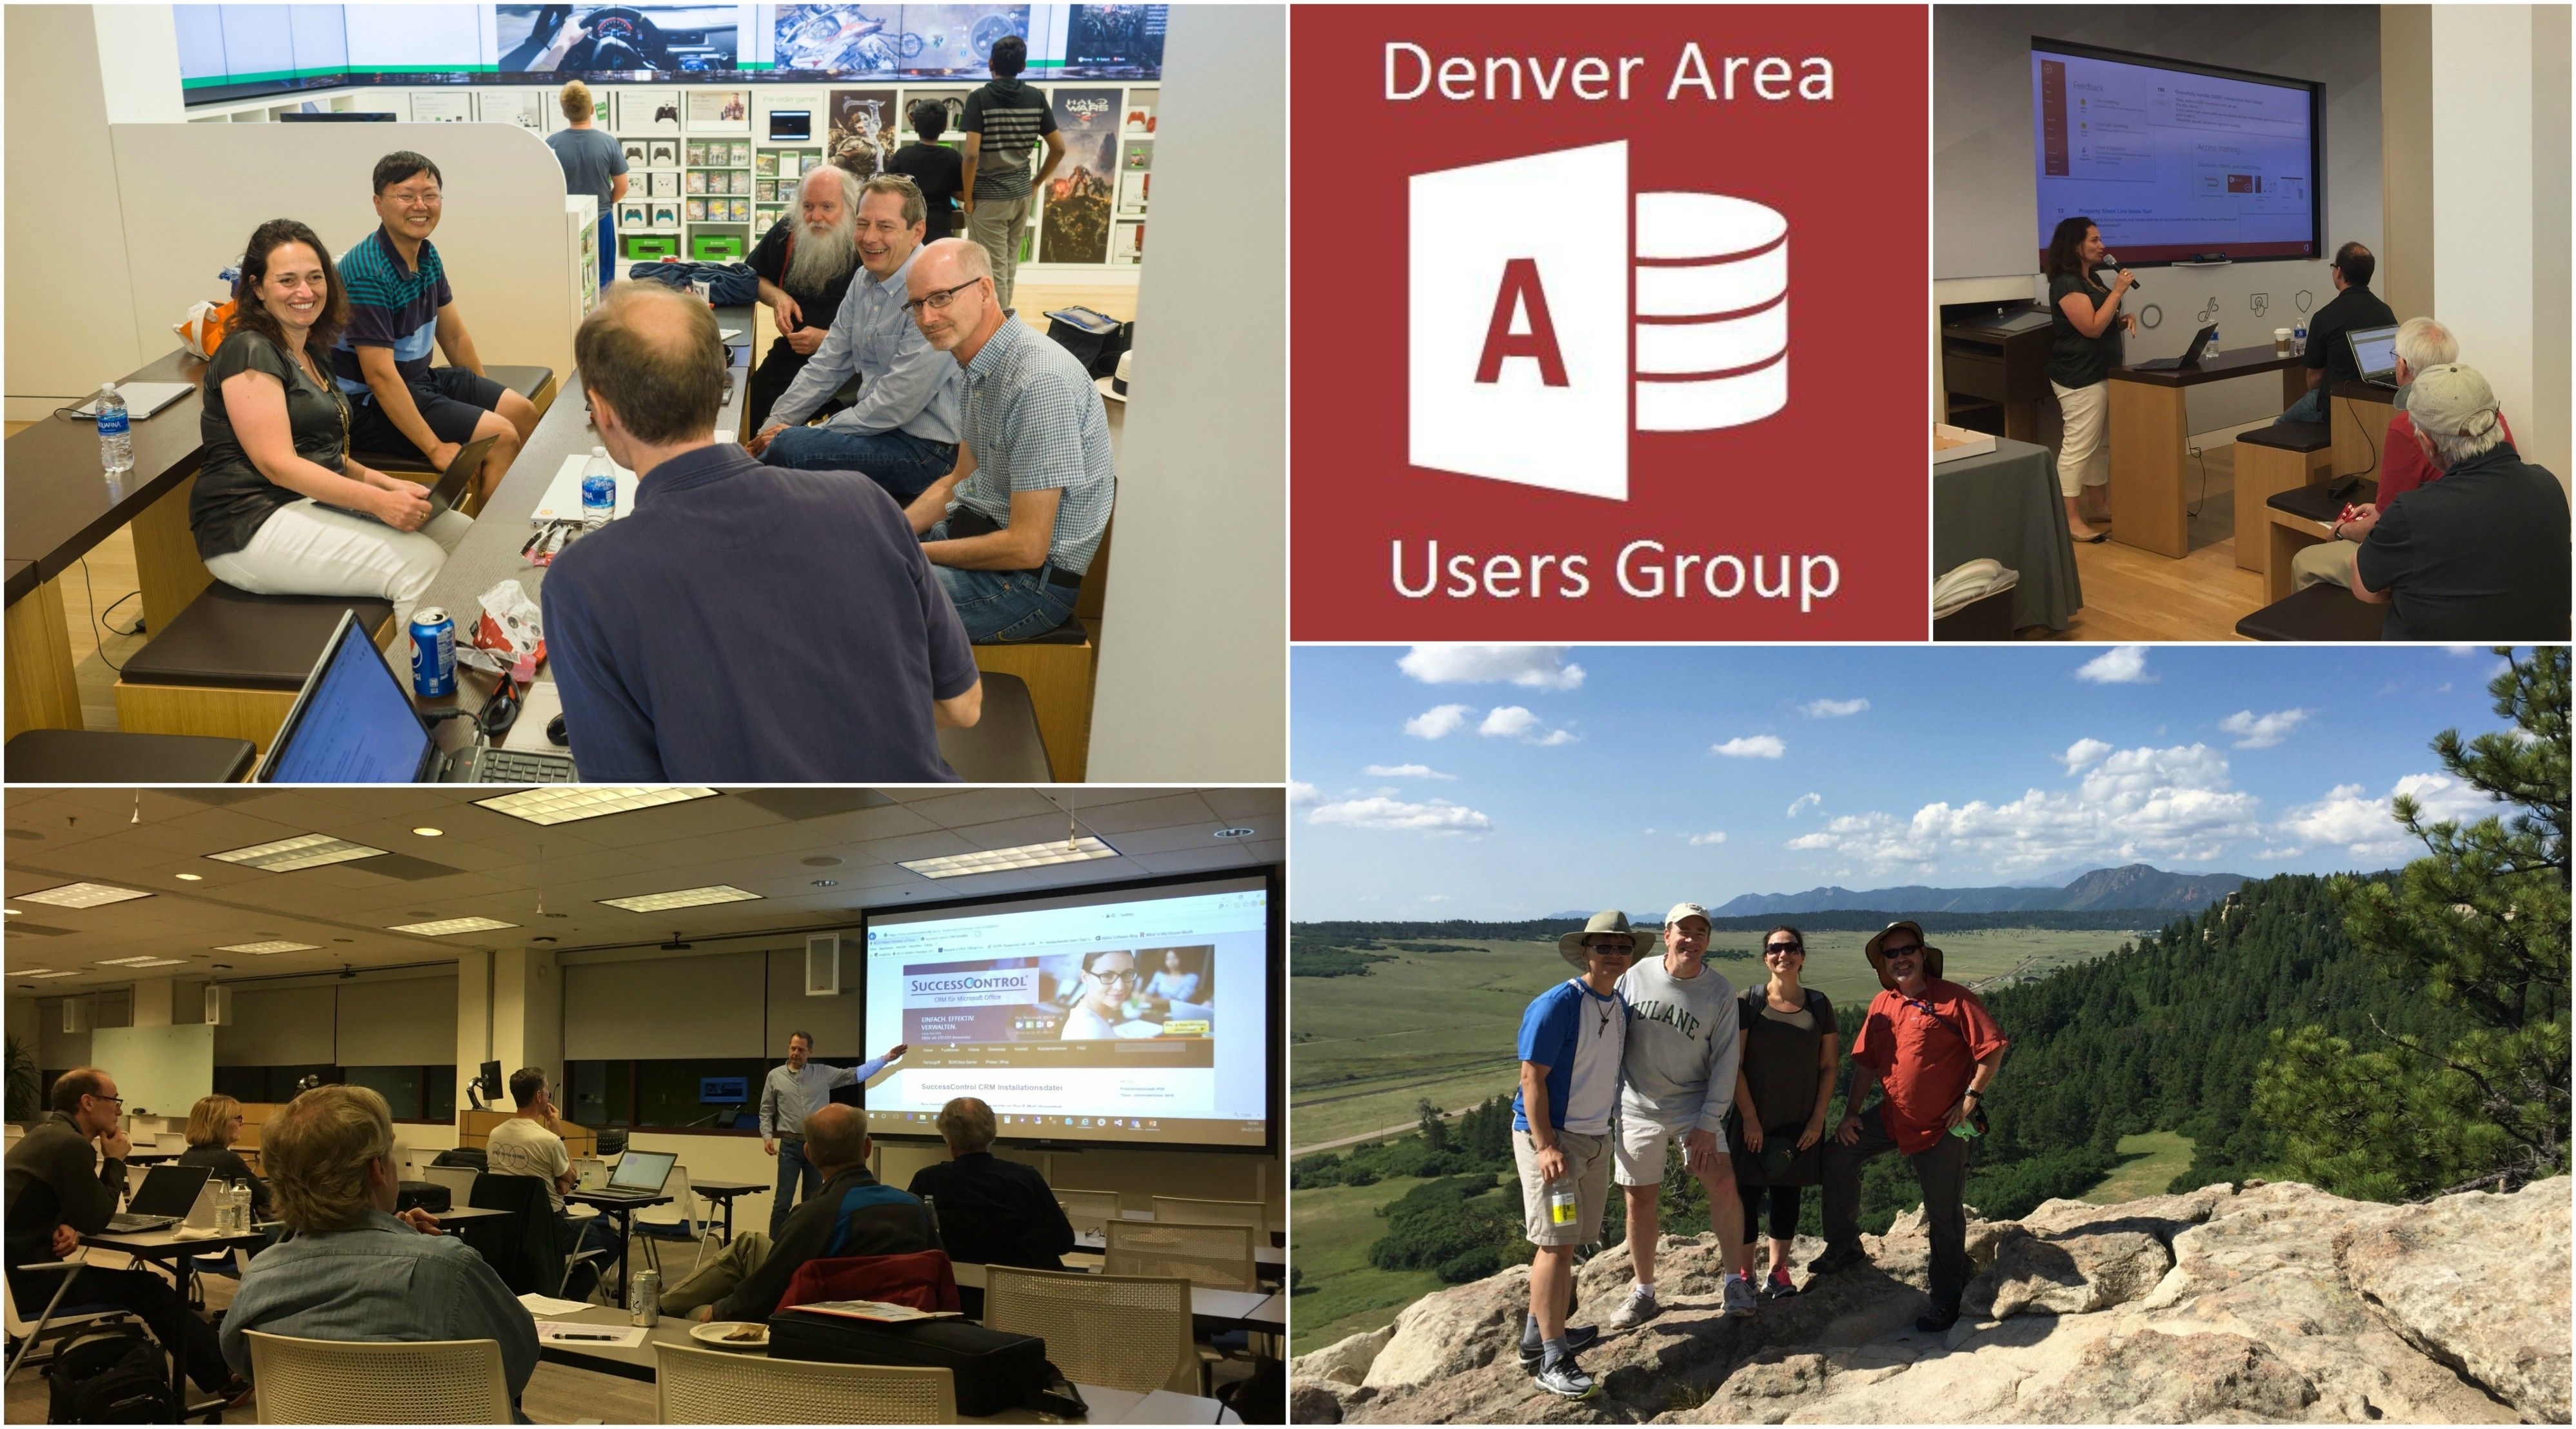 Denver Area Microsoft Access Users Group